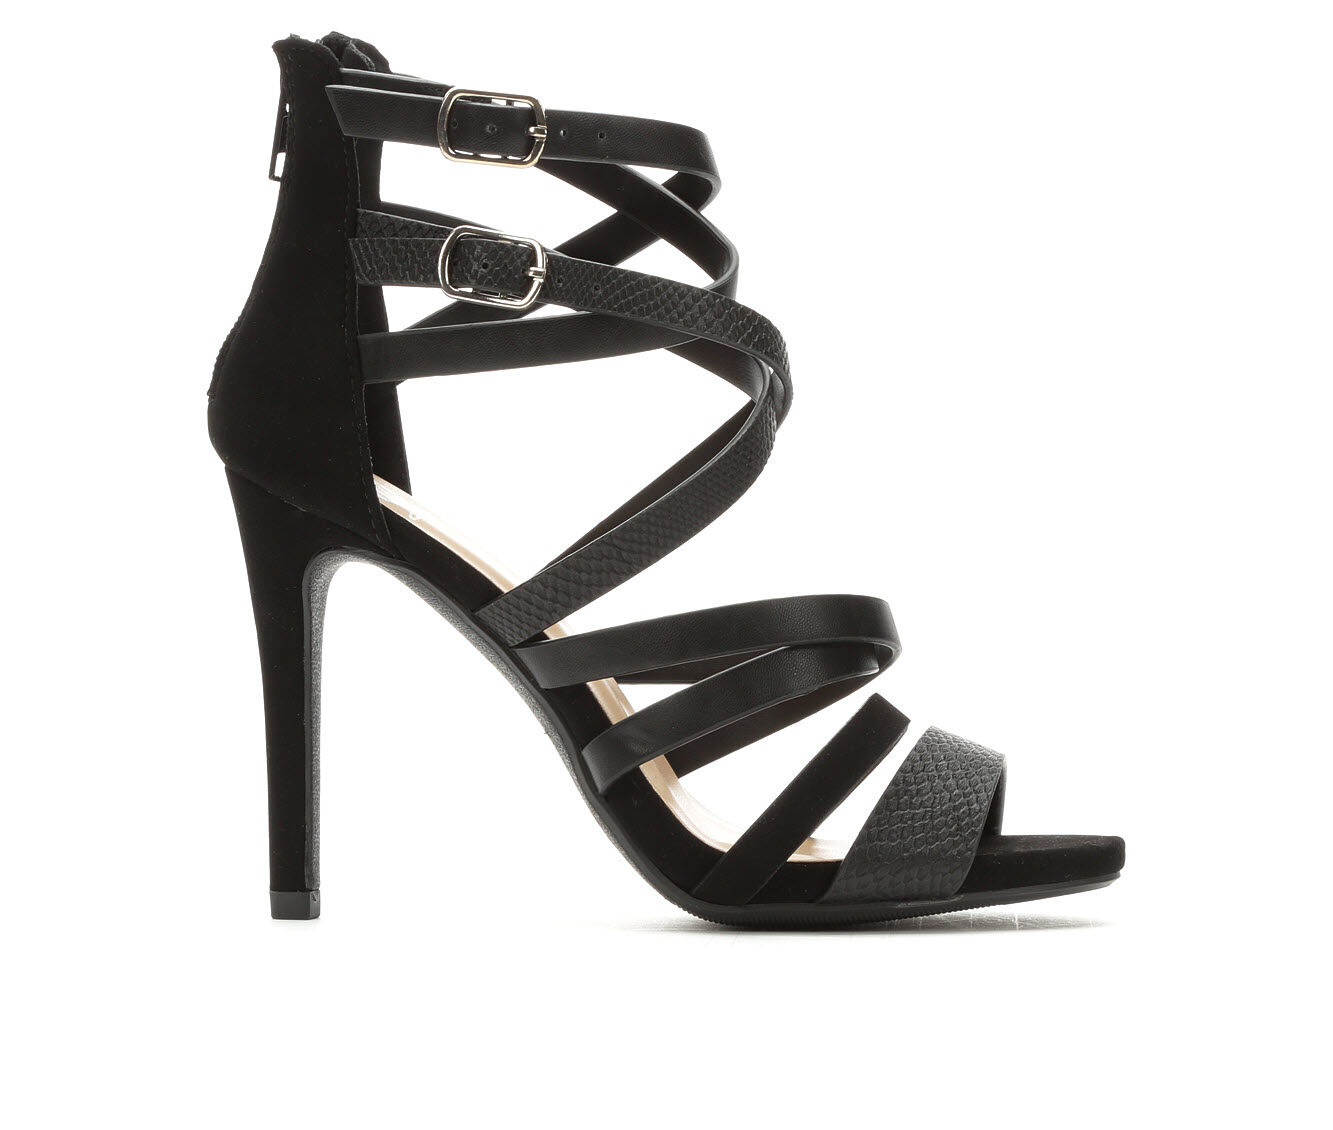 Women's Delicious Cage Strappy Heeled Sandals Black Multi PU